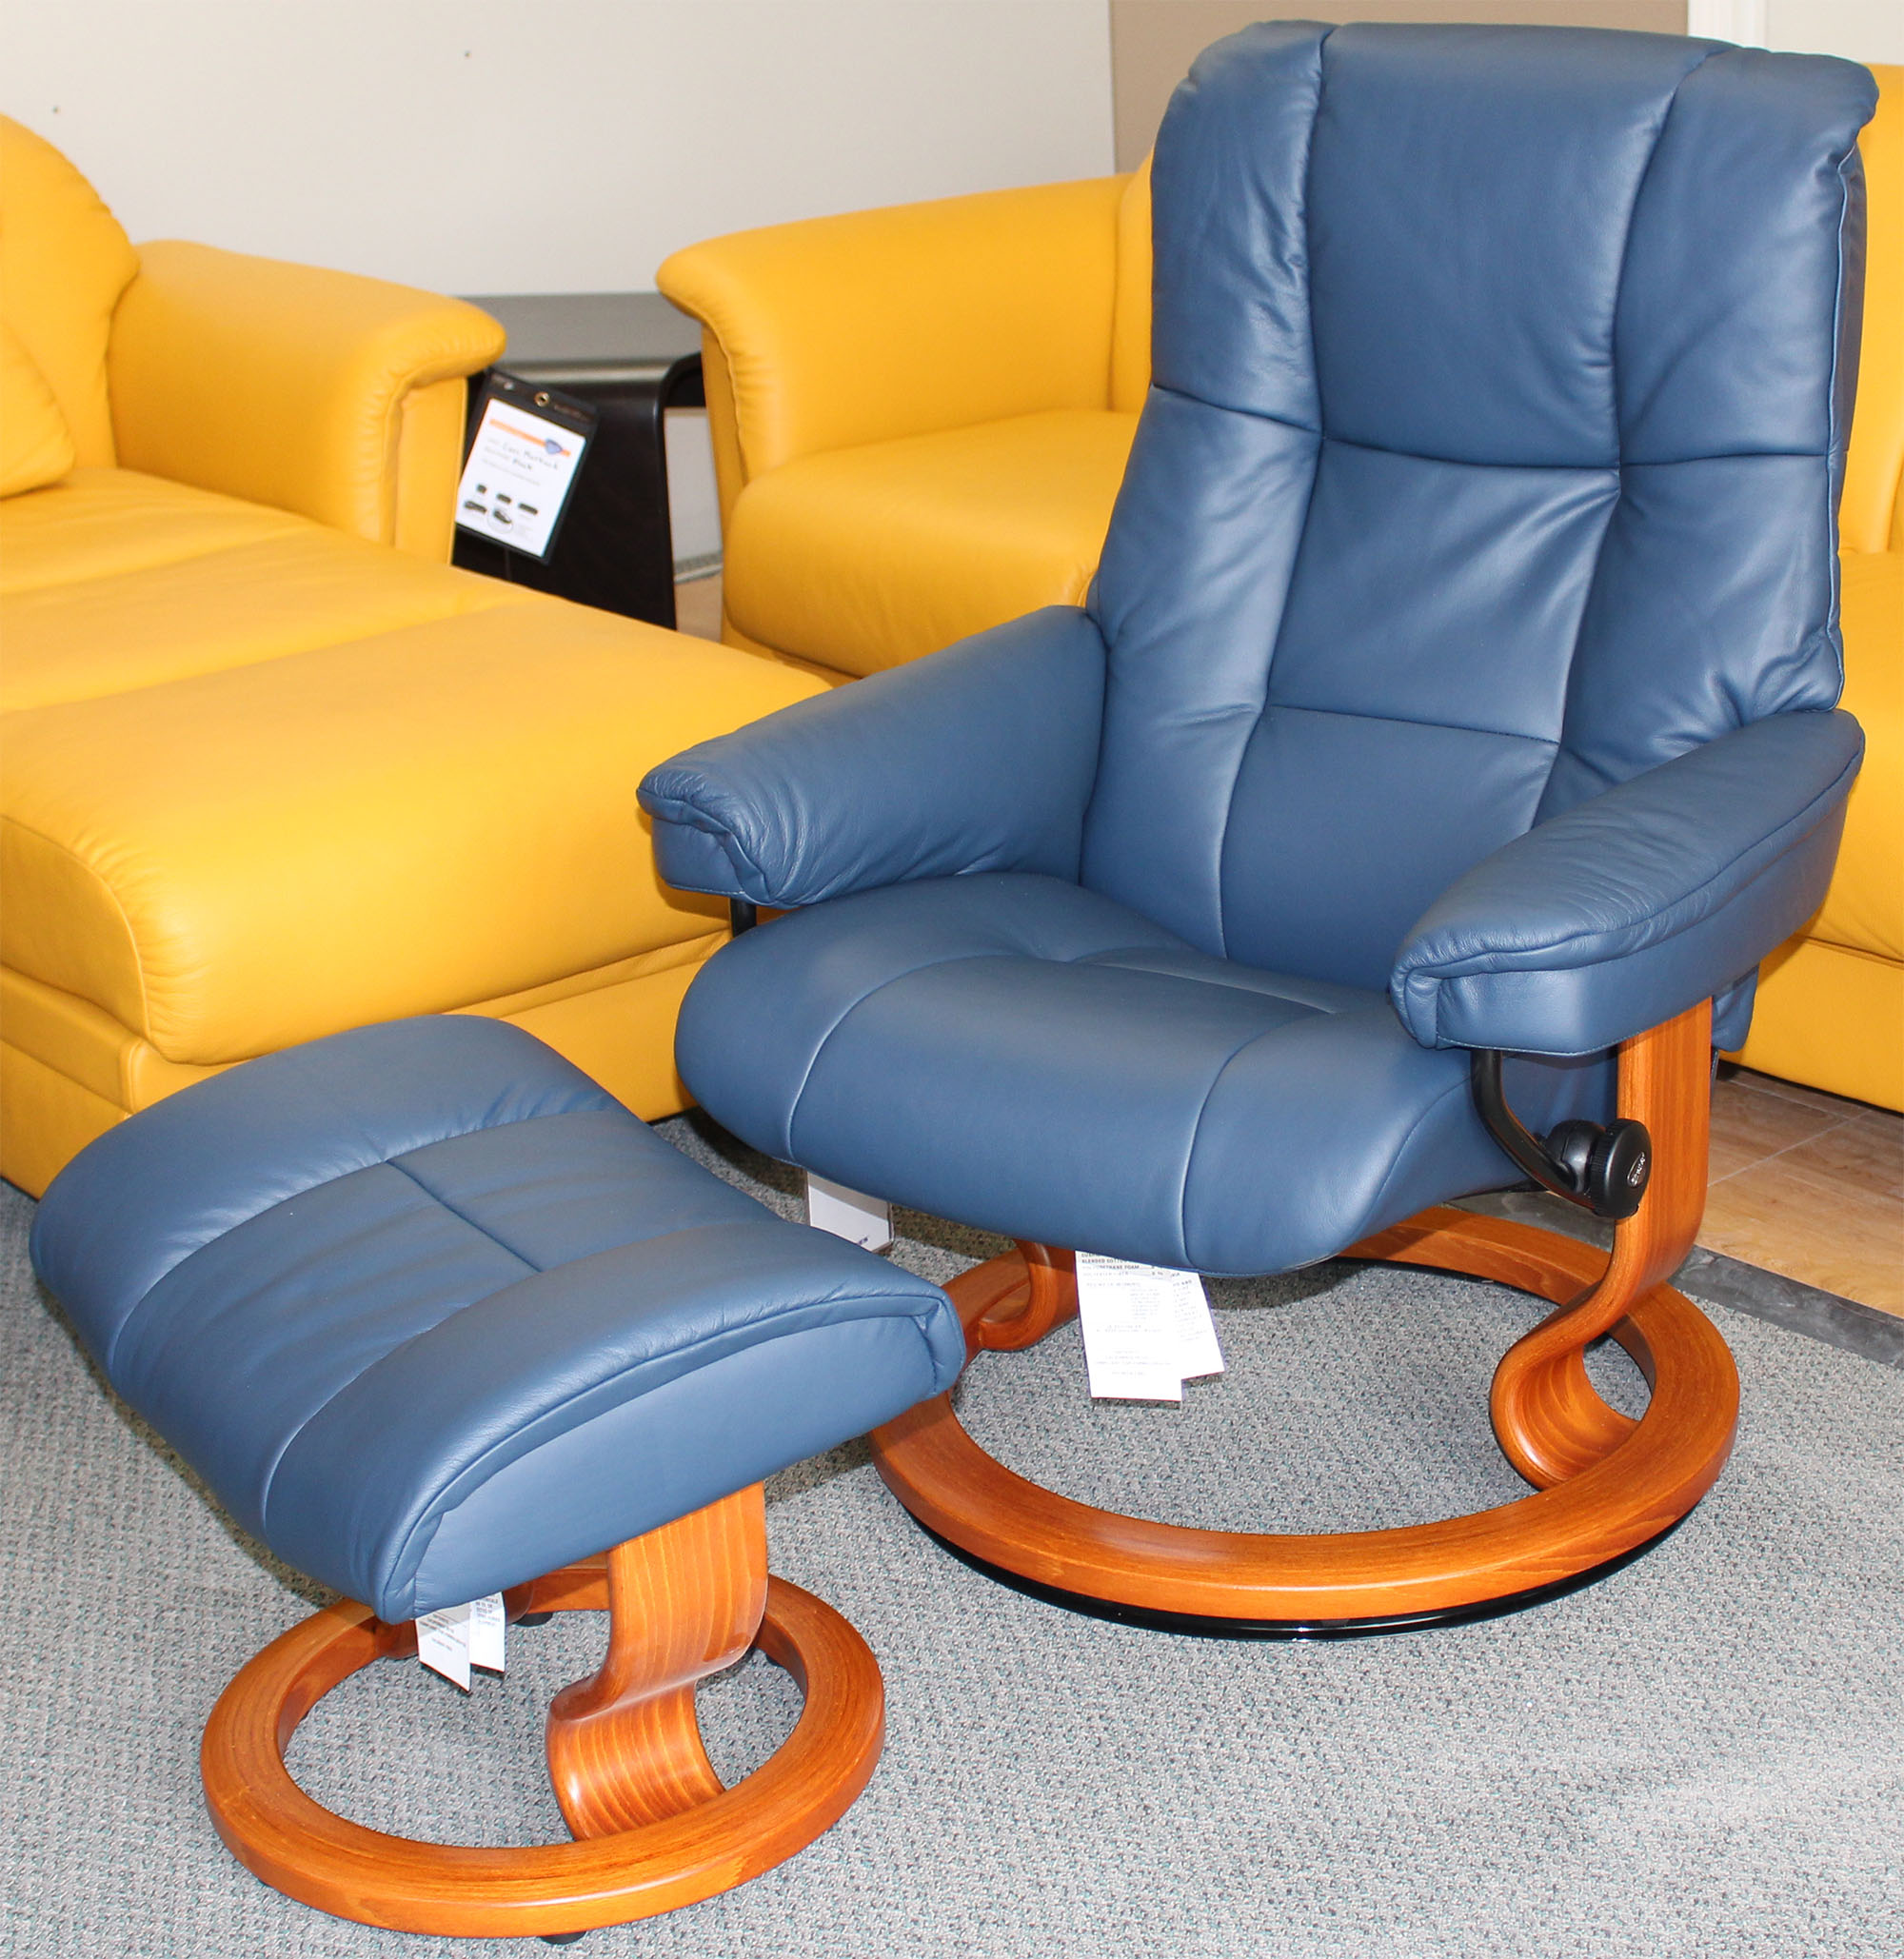 Ekornes Stressless Stressless Mayfair Paloma Oxford Blue Leather Recliner Chair And Ottoman By Ekornes